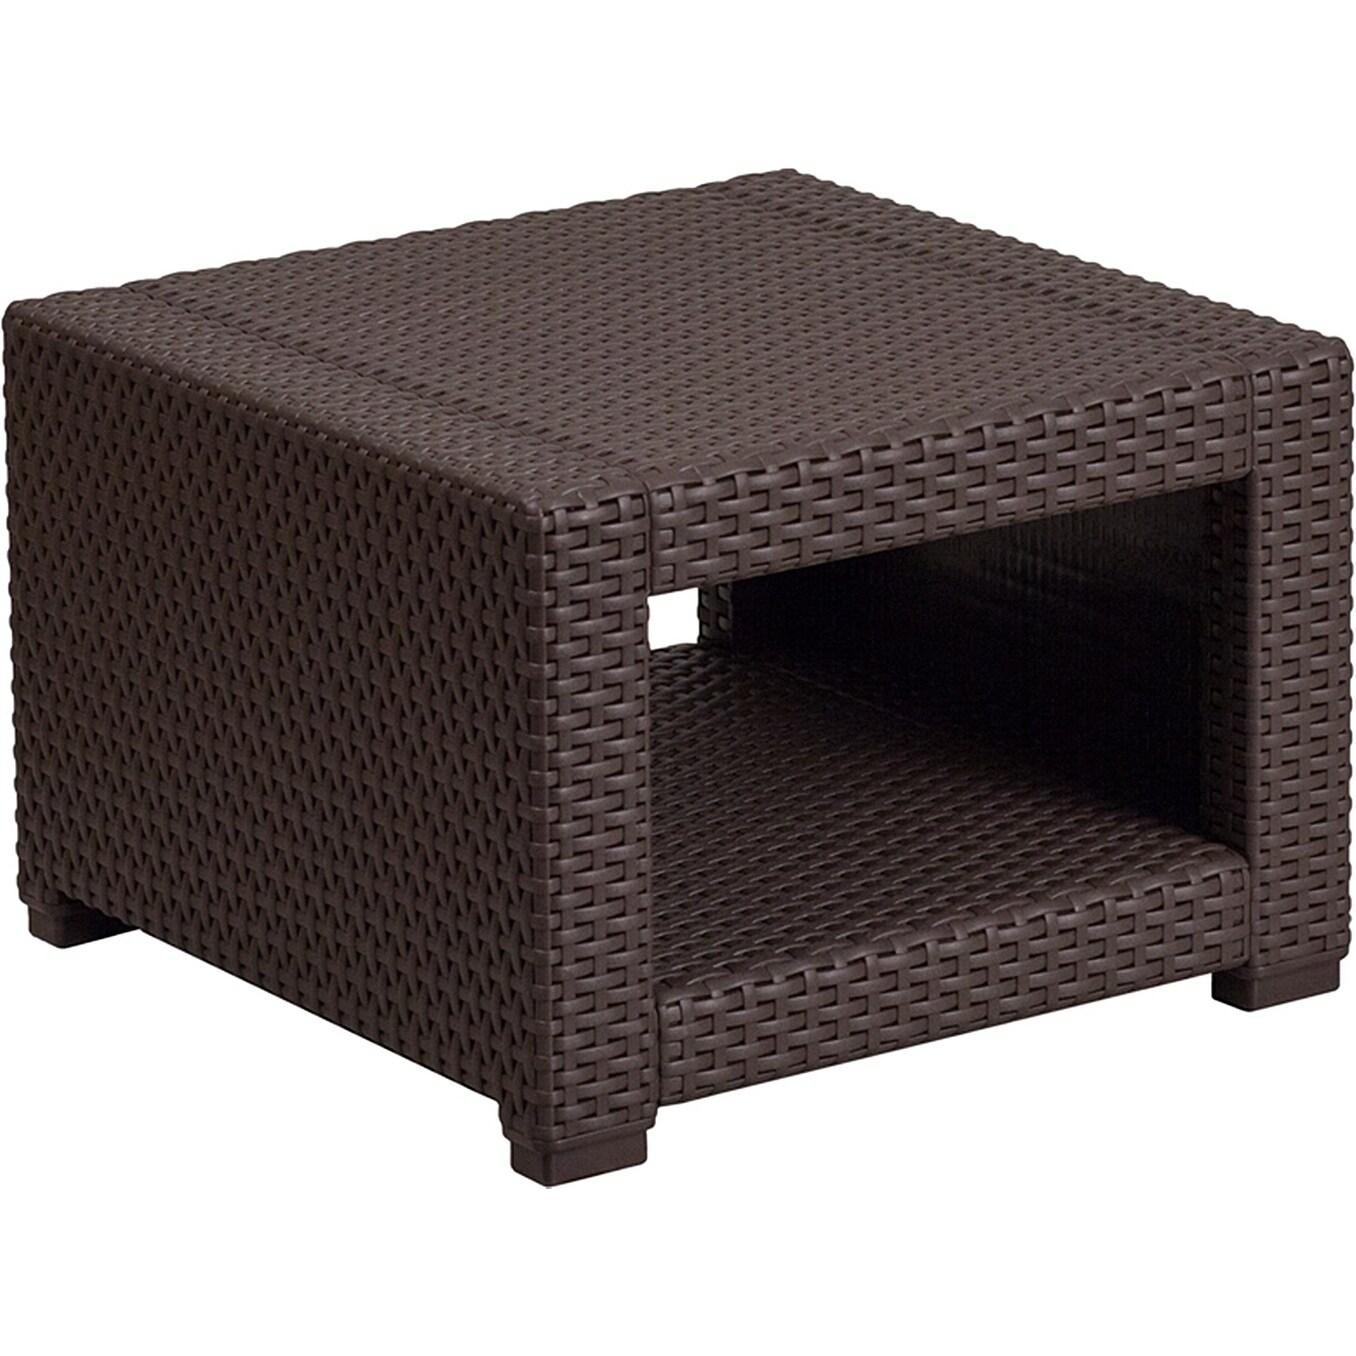 Winston Chocolate Brown All-weather Garden Patio Side Table